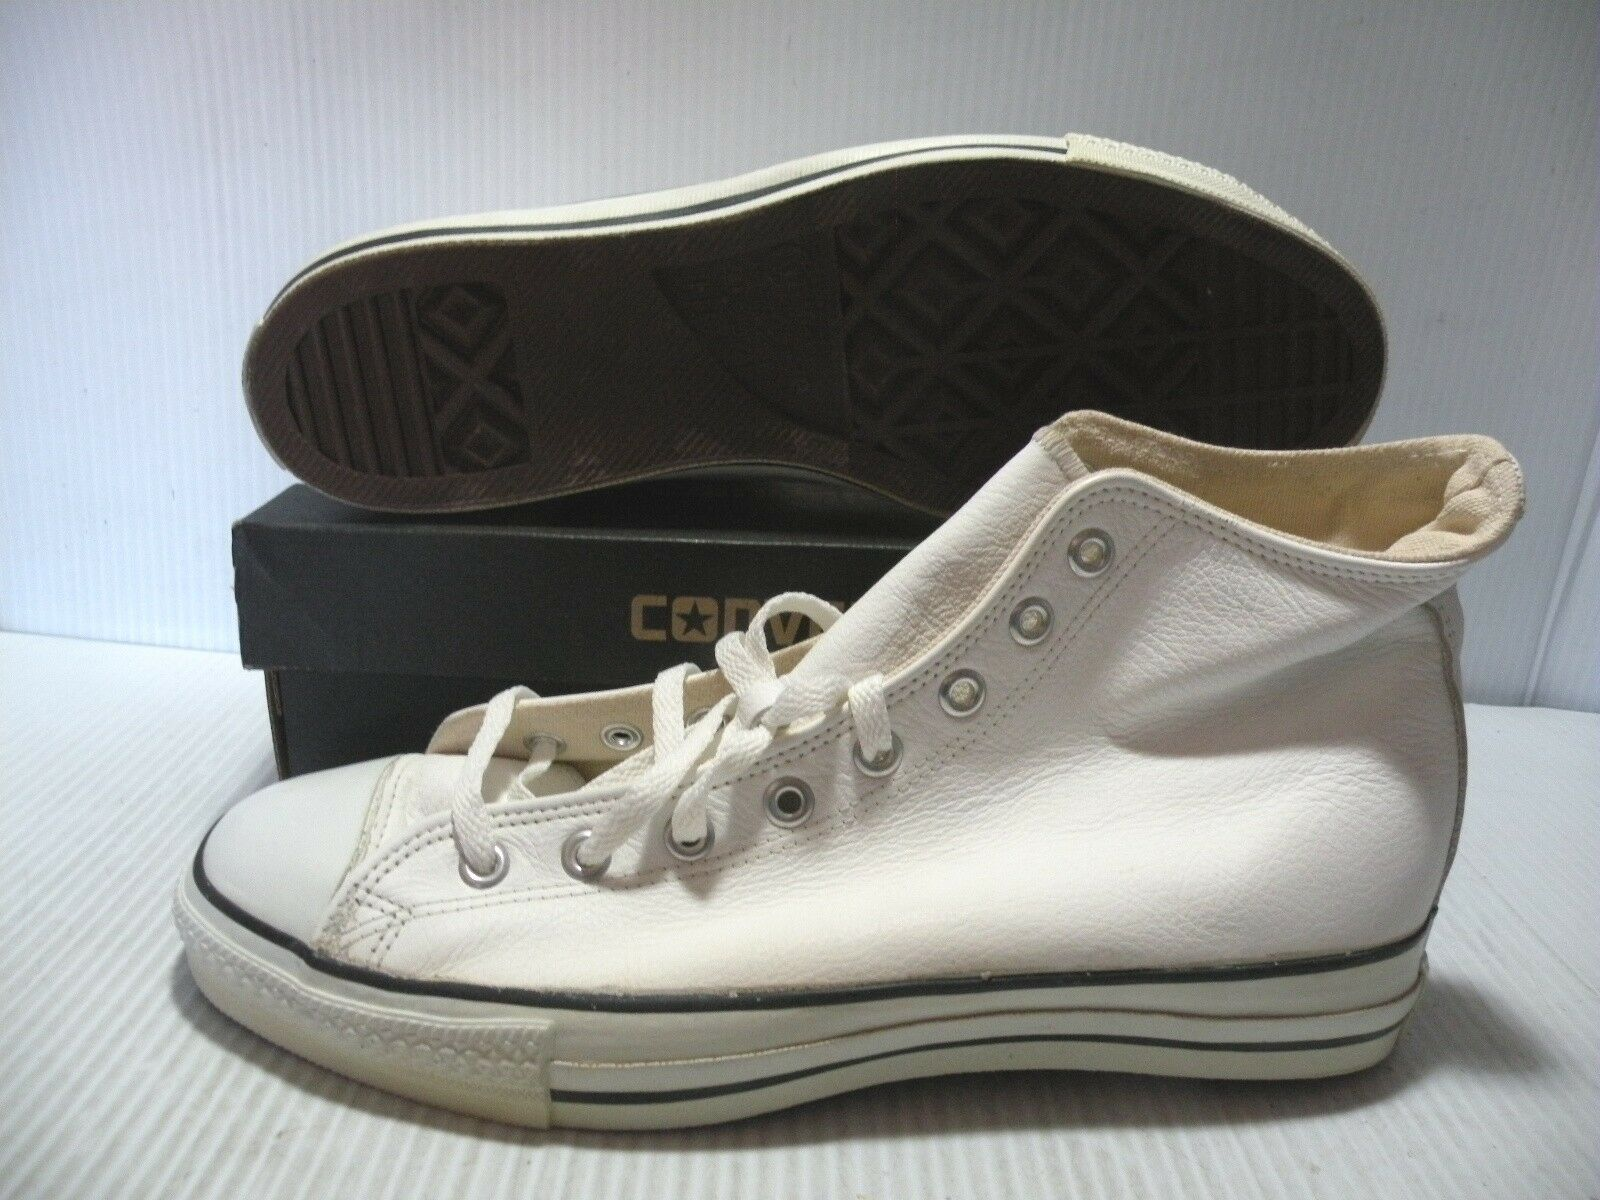 CONVERSE ALL STAR CT VINTAGE MADE IN USA MEN SHOES WHITE 1J894 SIZE 11.5 NEW